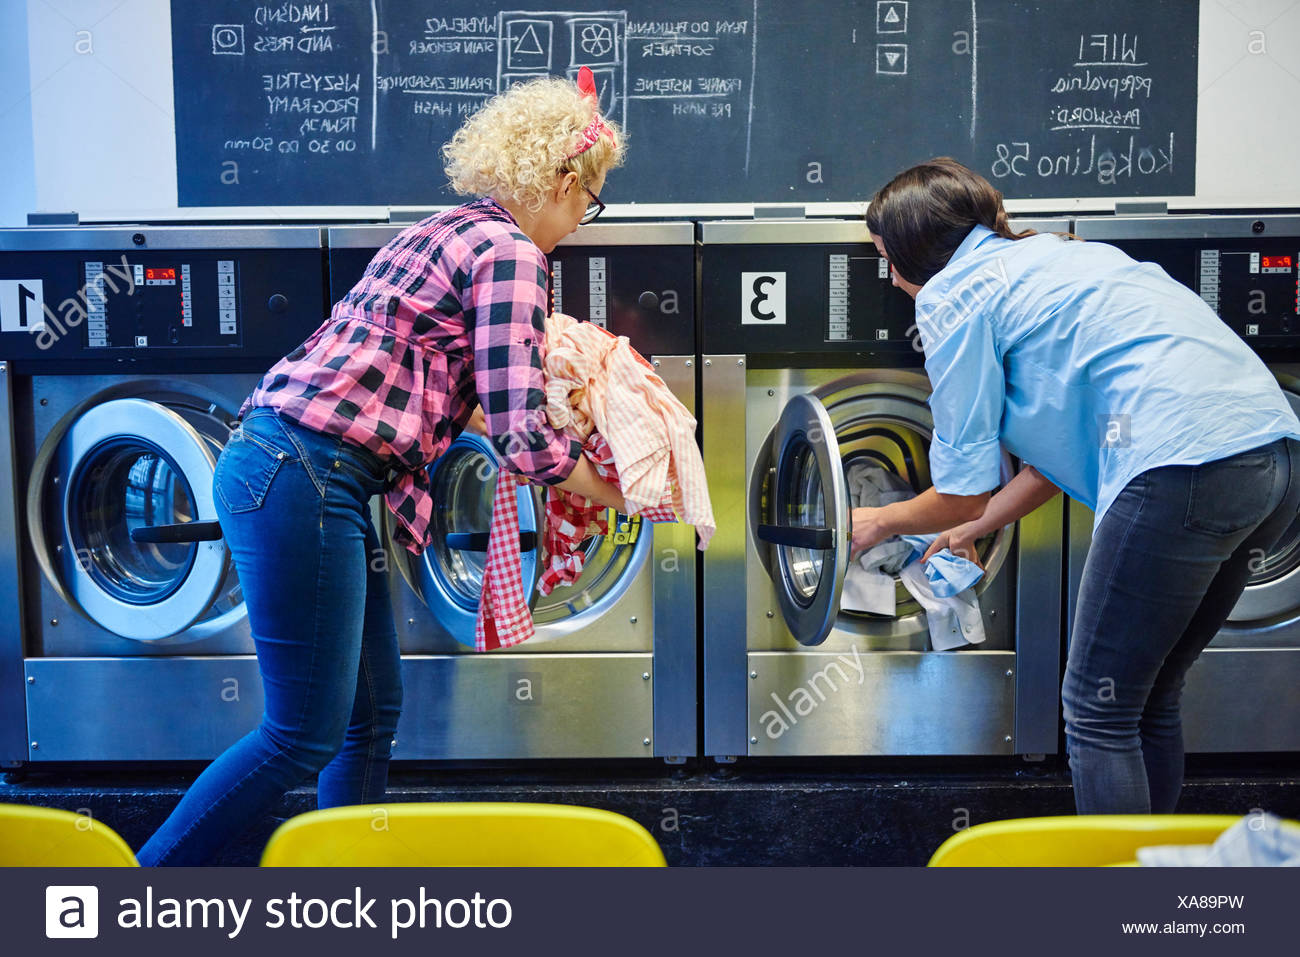 Two women inserting laundry into washing machines at laundrette - Stock Image